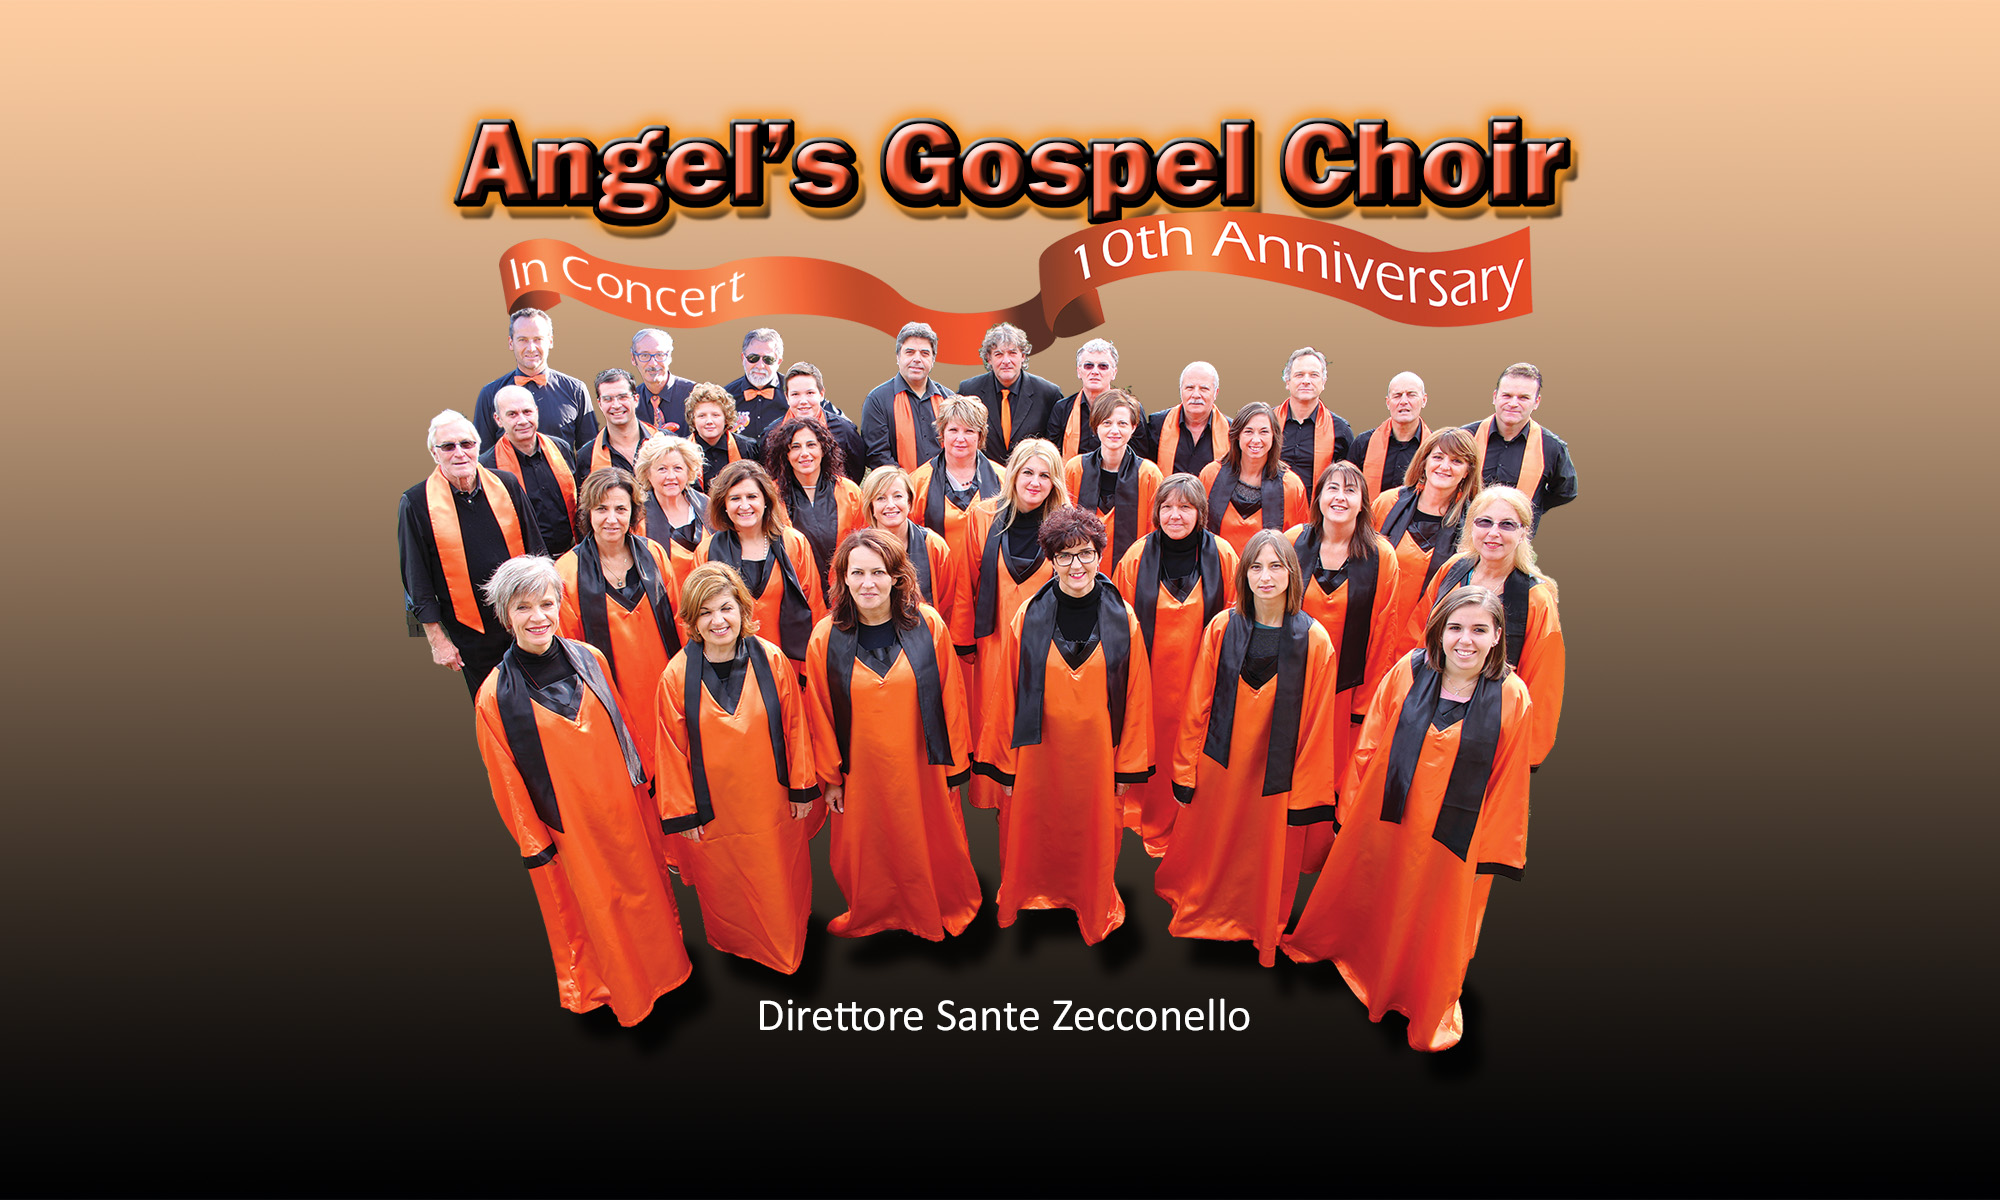 Angels Gospel Choir